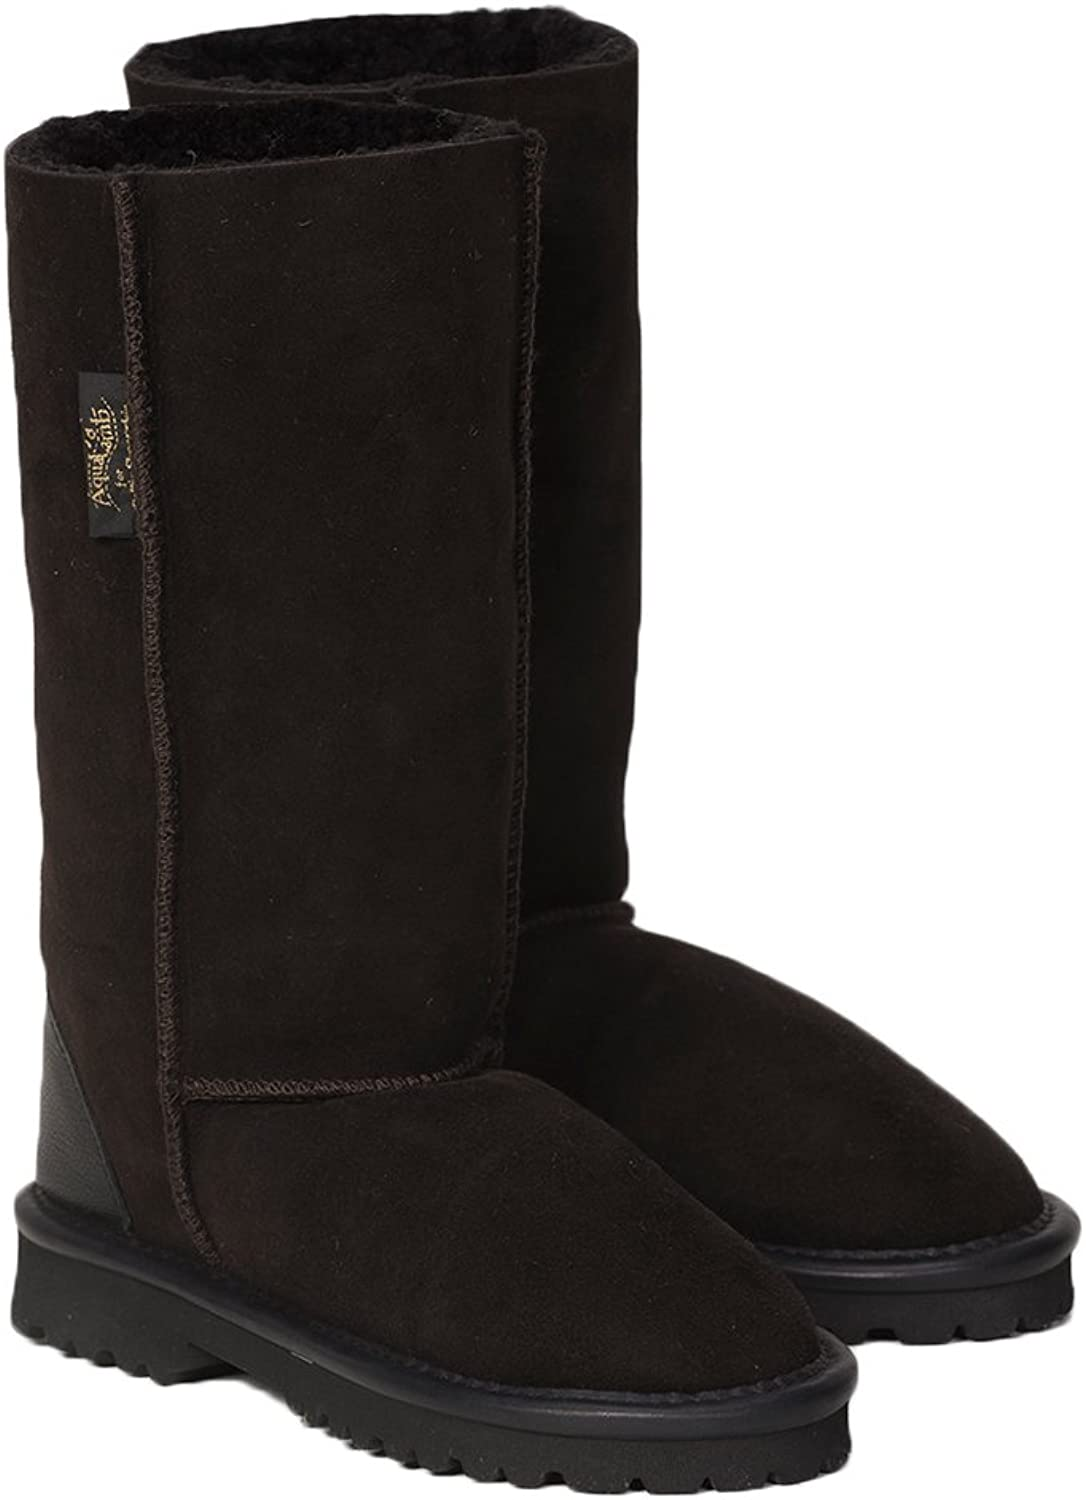 Celtic  Co damen Water Resistant Regular Height Height British Sheepskin Aqualamb Stiefel  Sparen Sie 30-50%!